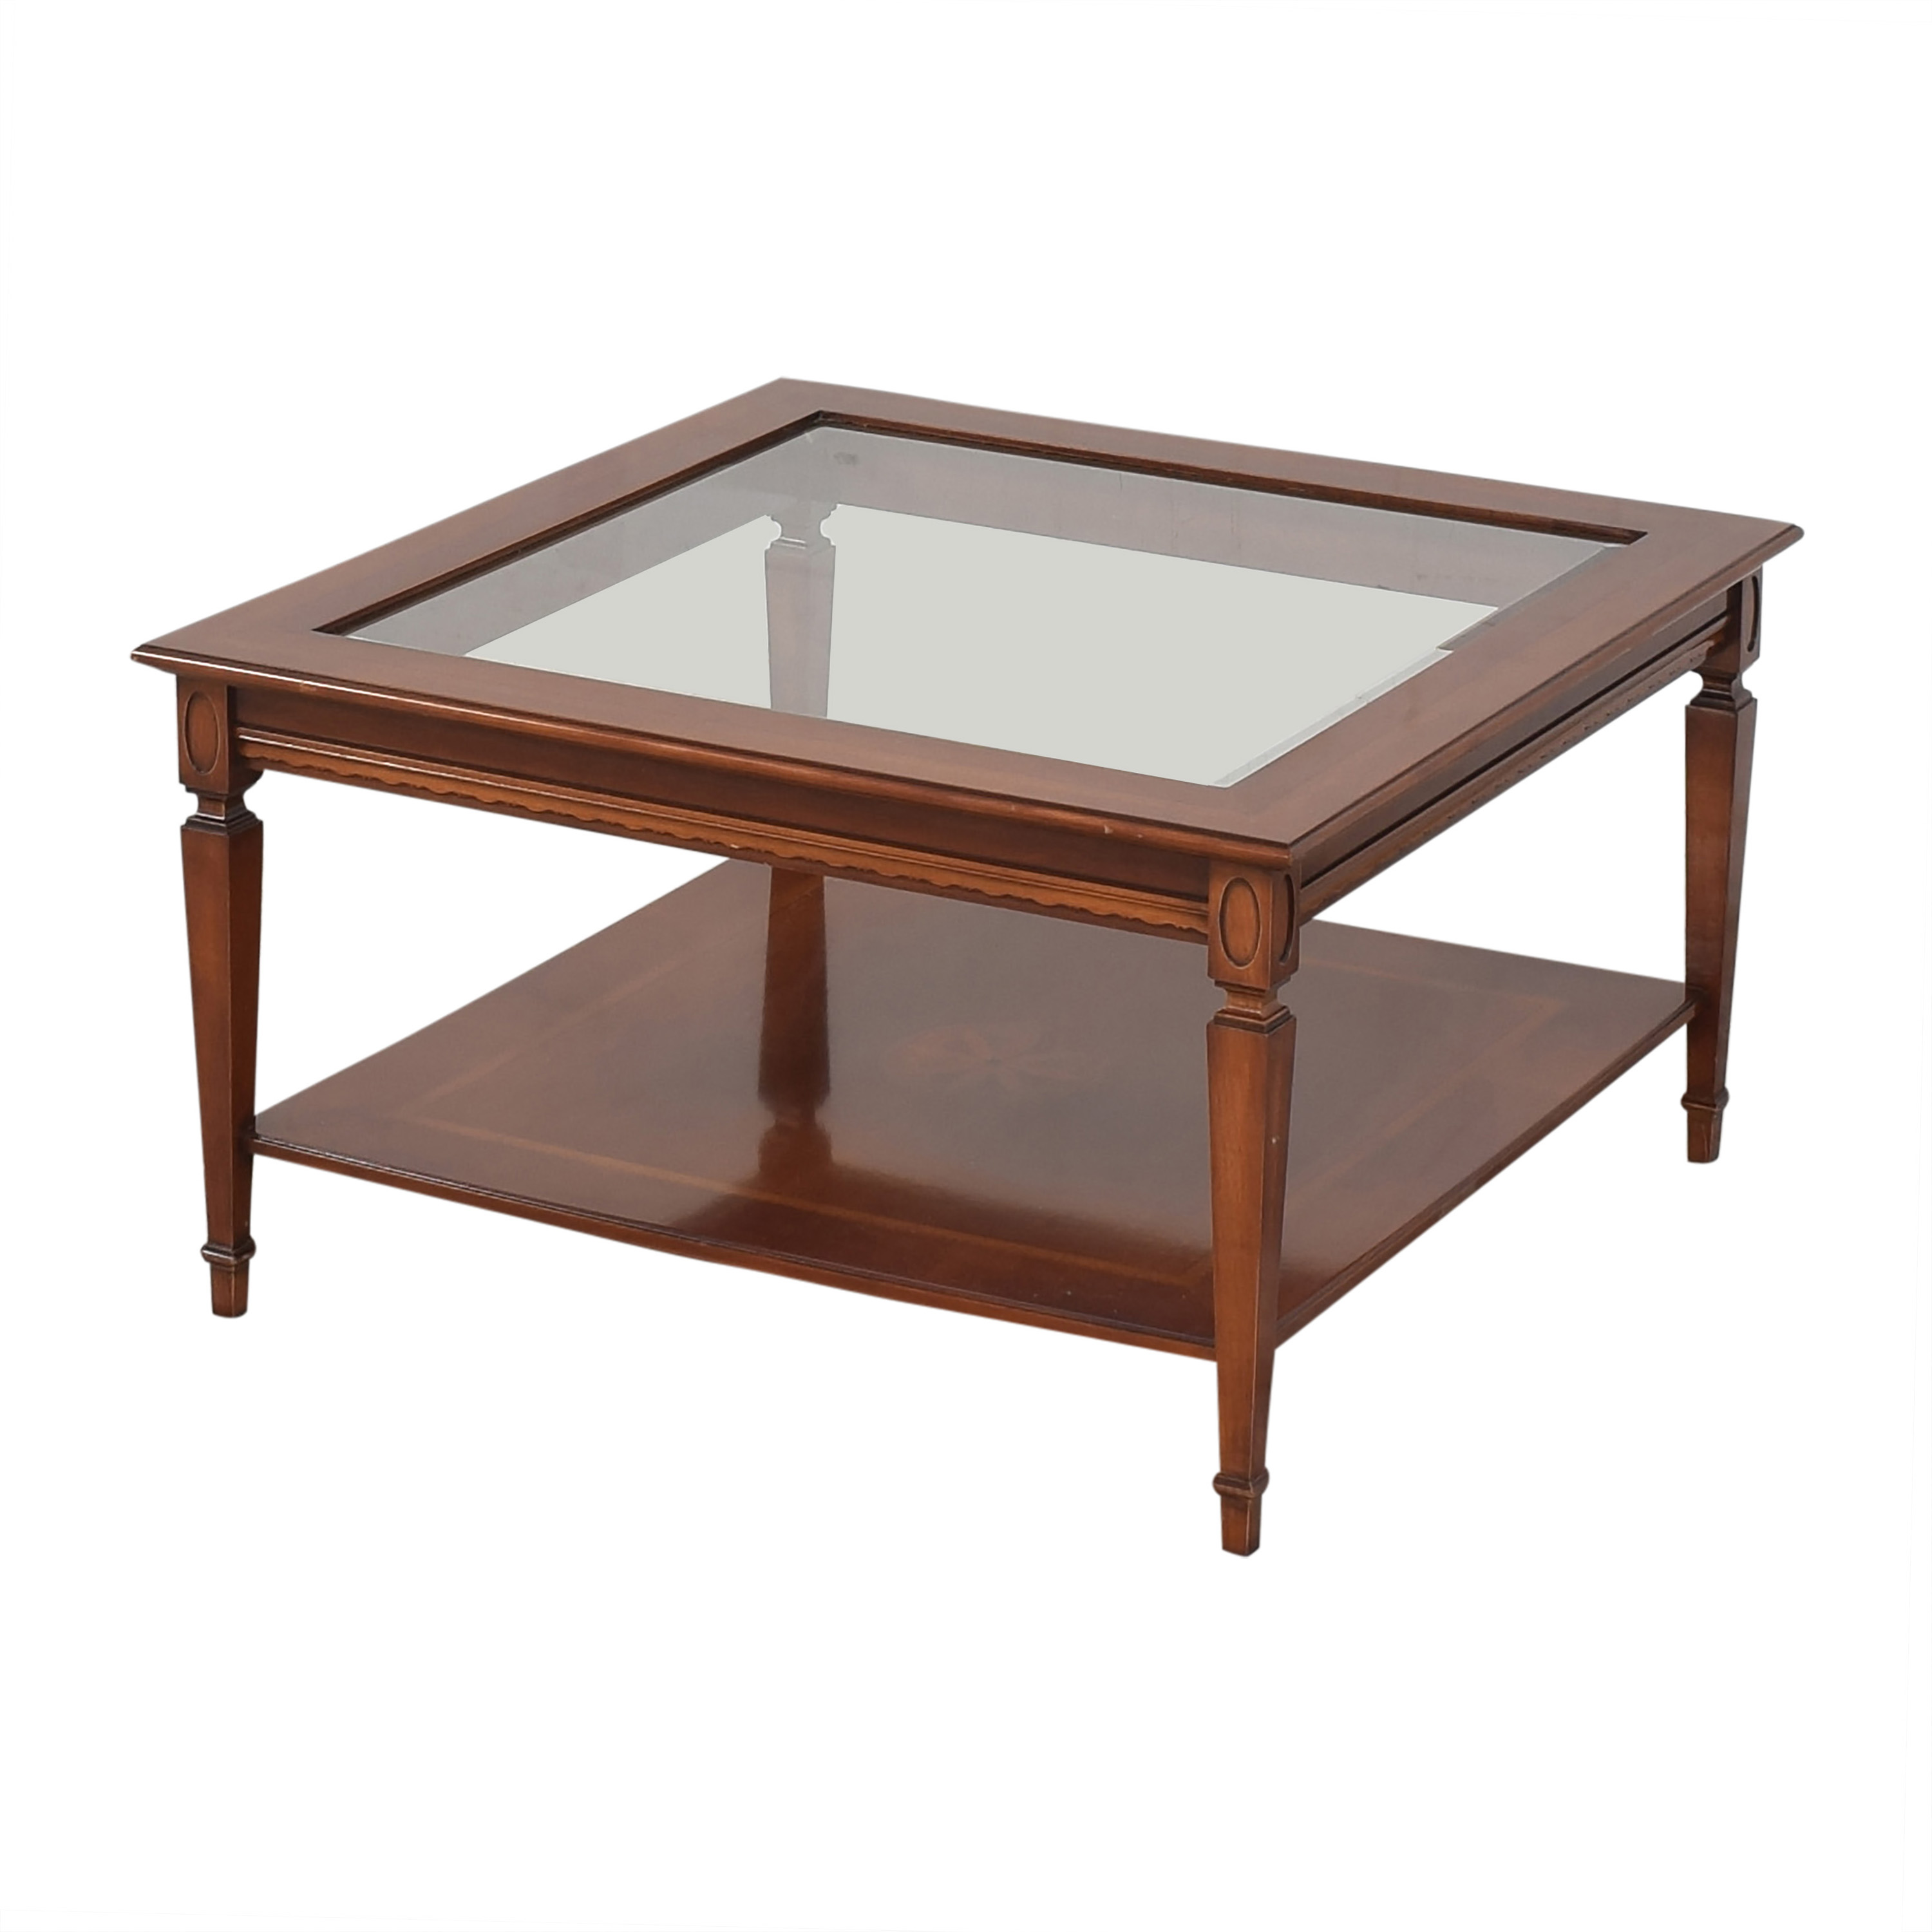 Maurice Villency Maurice Villency Square Coffee Table for sale